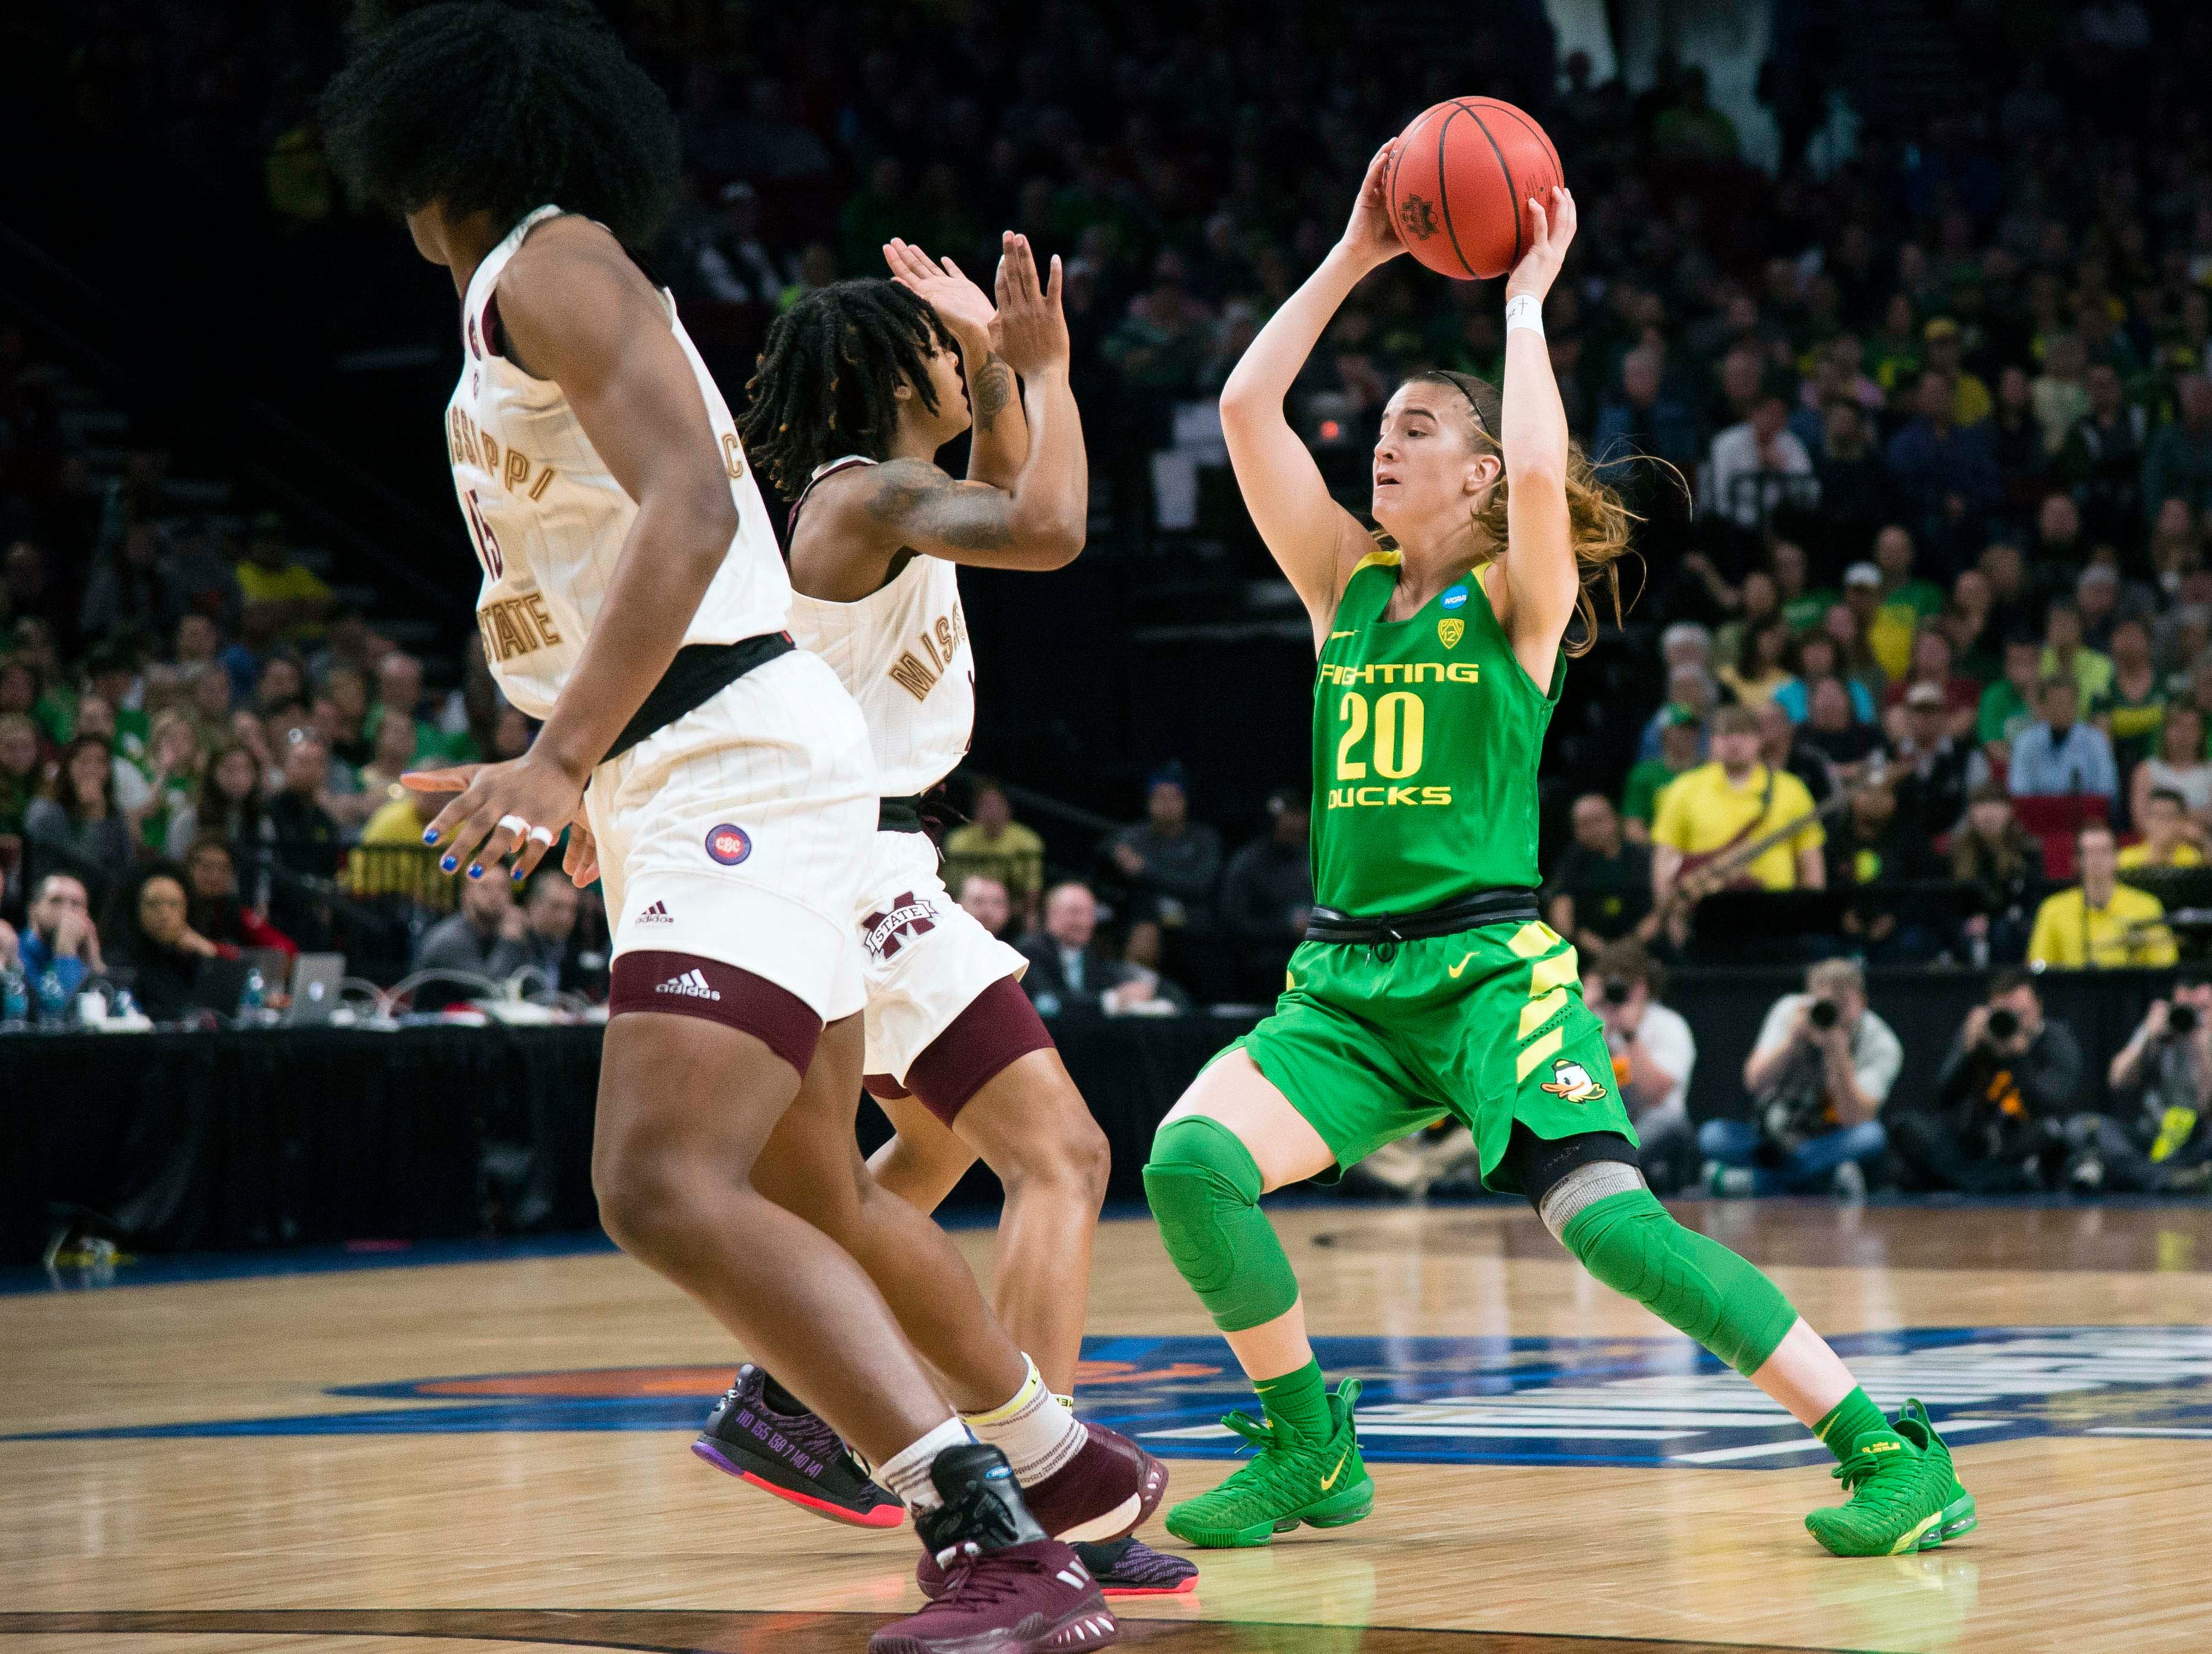 Oregon Ducks guard Sabrina Ionescu (20) looks to pass the ball against during the first half against Mississippi State Bulldogs in the championship game of the Portland regional in the women's 2019 NCAA Tournament at Moda Center.